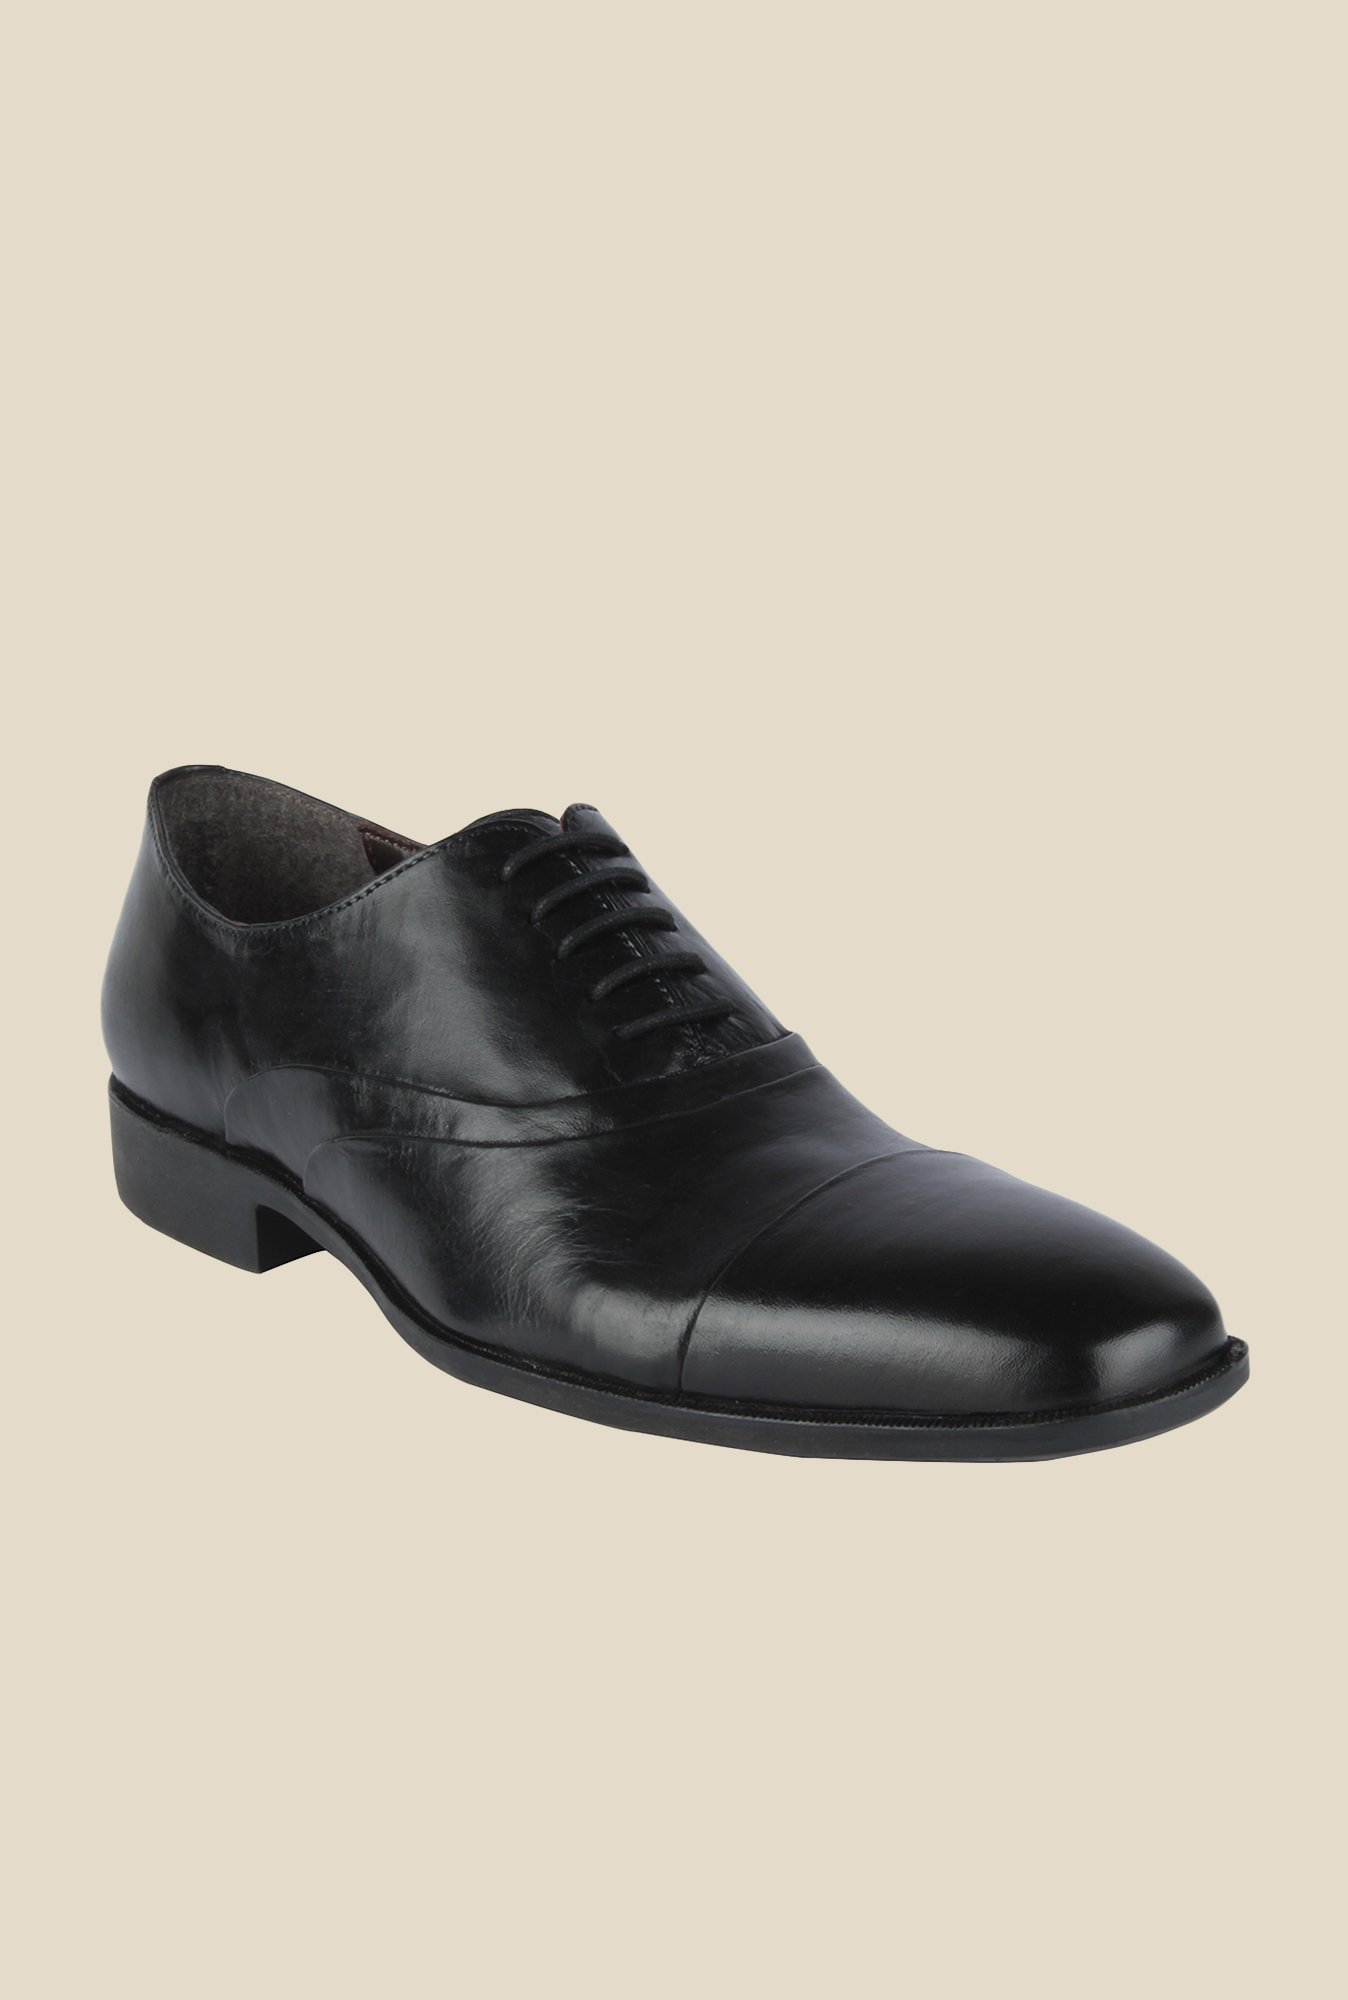 Salt 'n' Pepper Parker Black Oxford Shoes